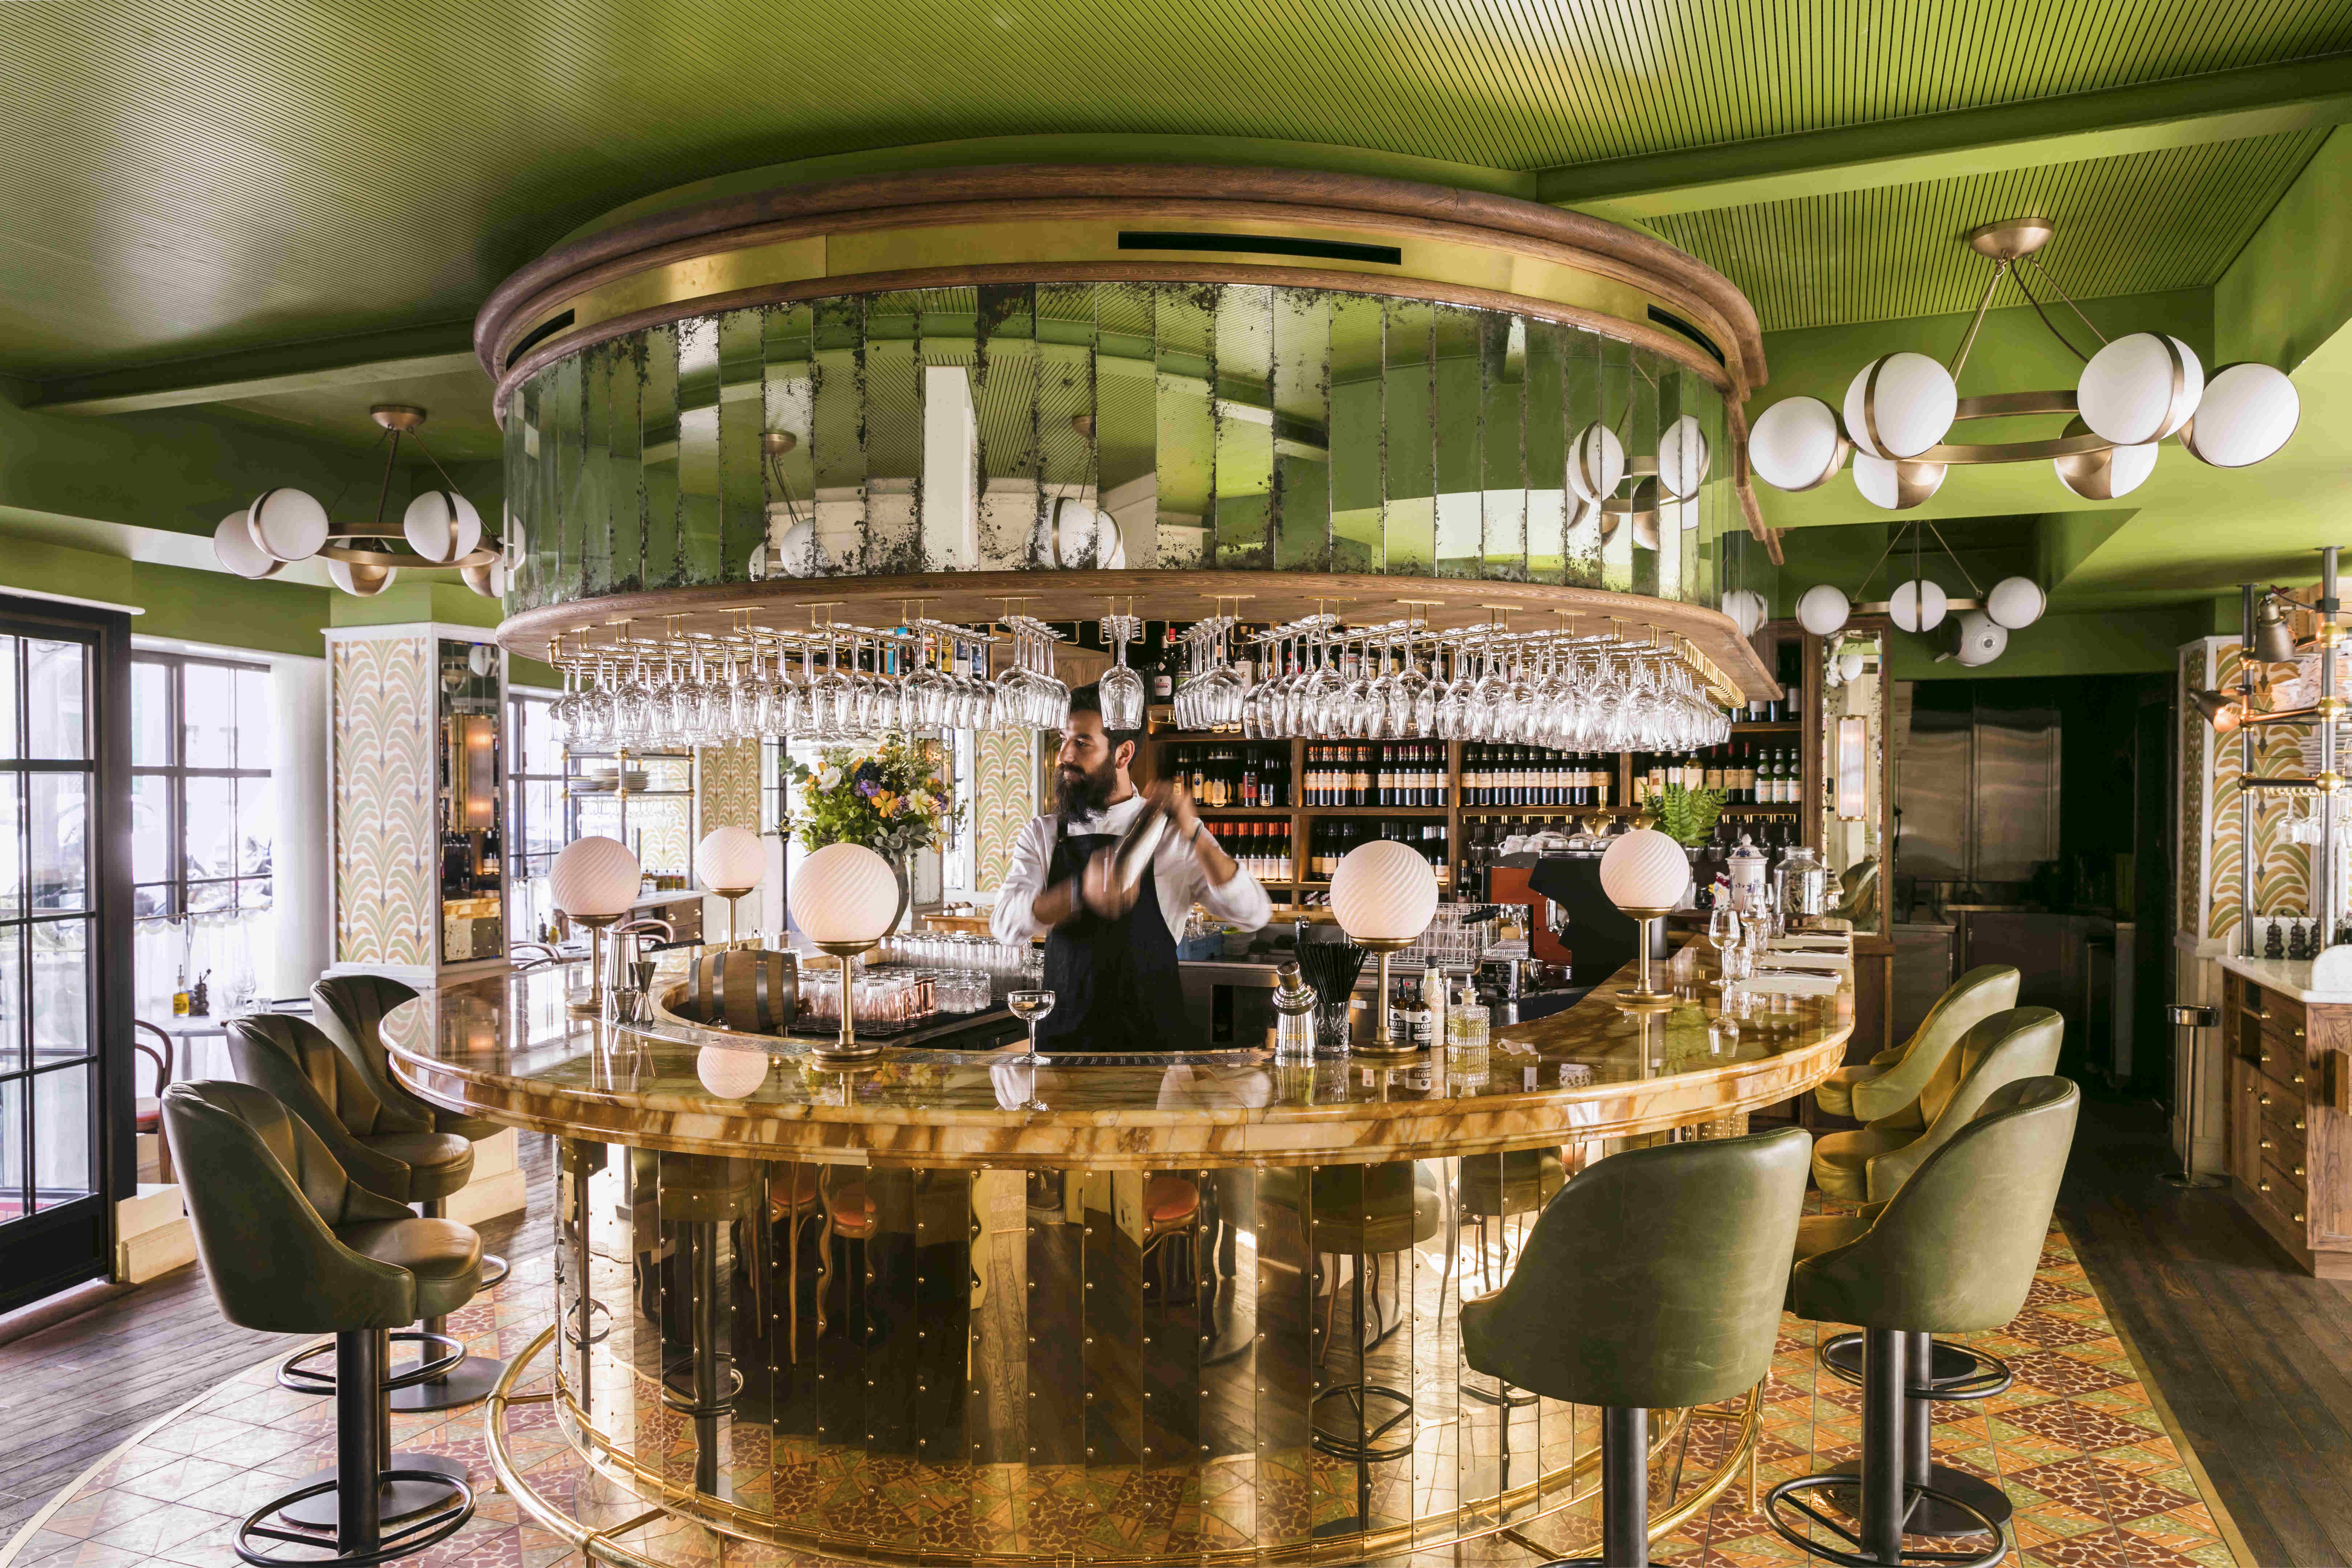 The bright green and metallic interior of the bar.